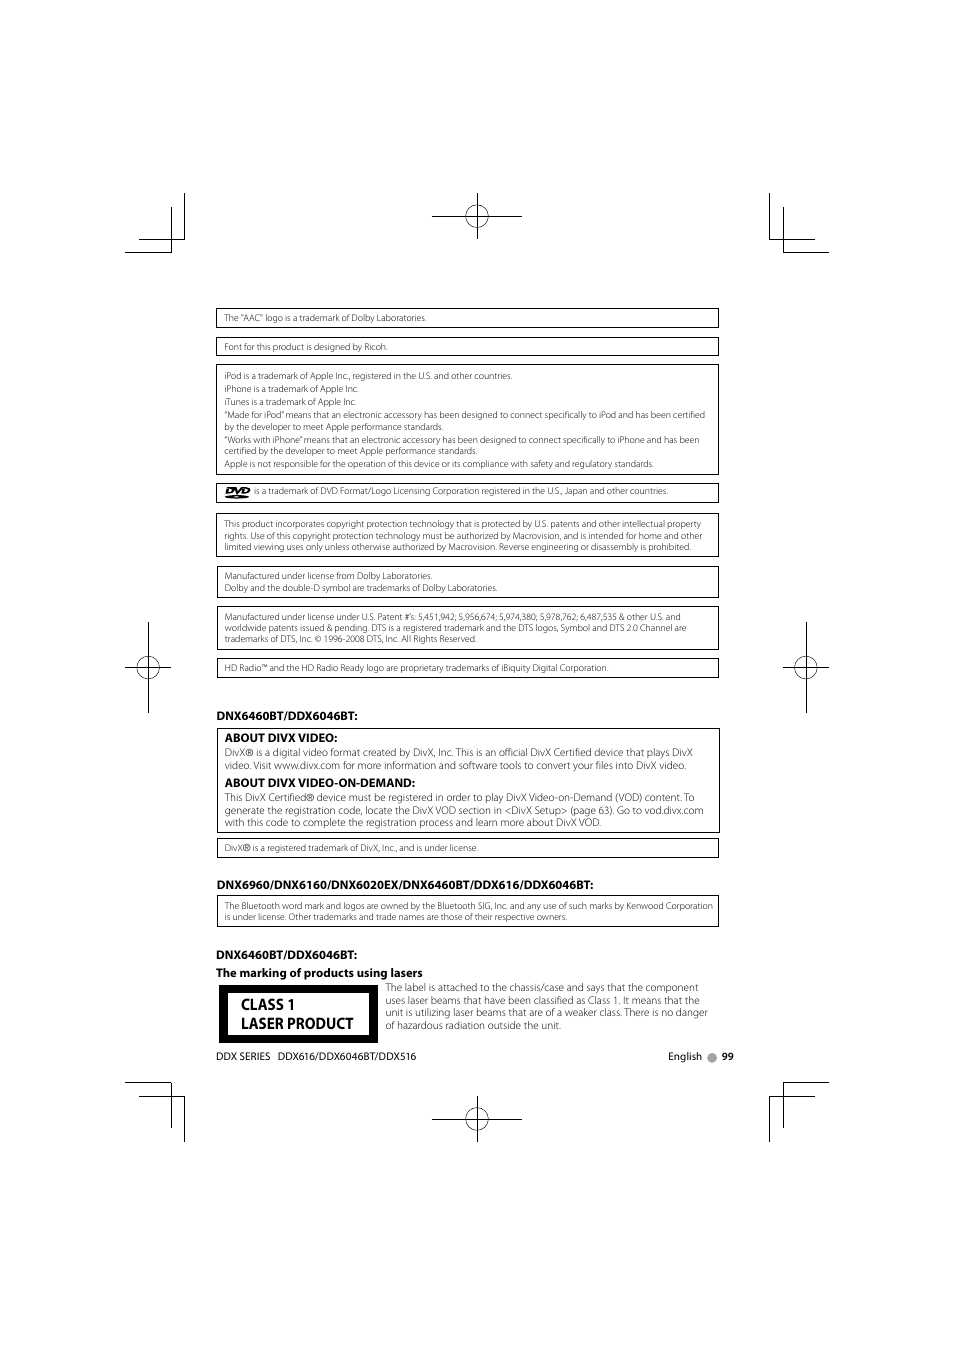 class 1 laser product kenwood dnx6160 user manual page 99 100 rh manualsdir com Kenwood DNX6160 Back Kenwood DNX6160 Updates